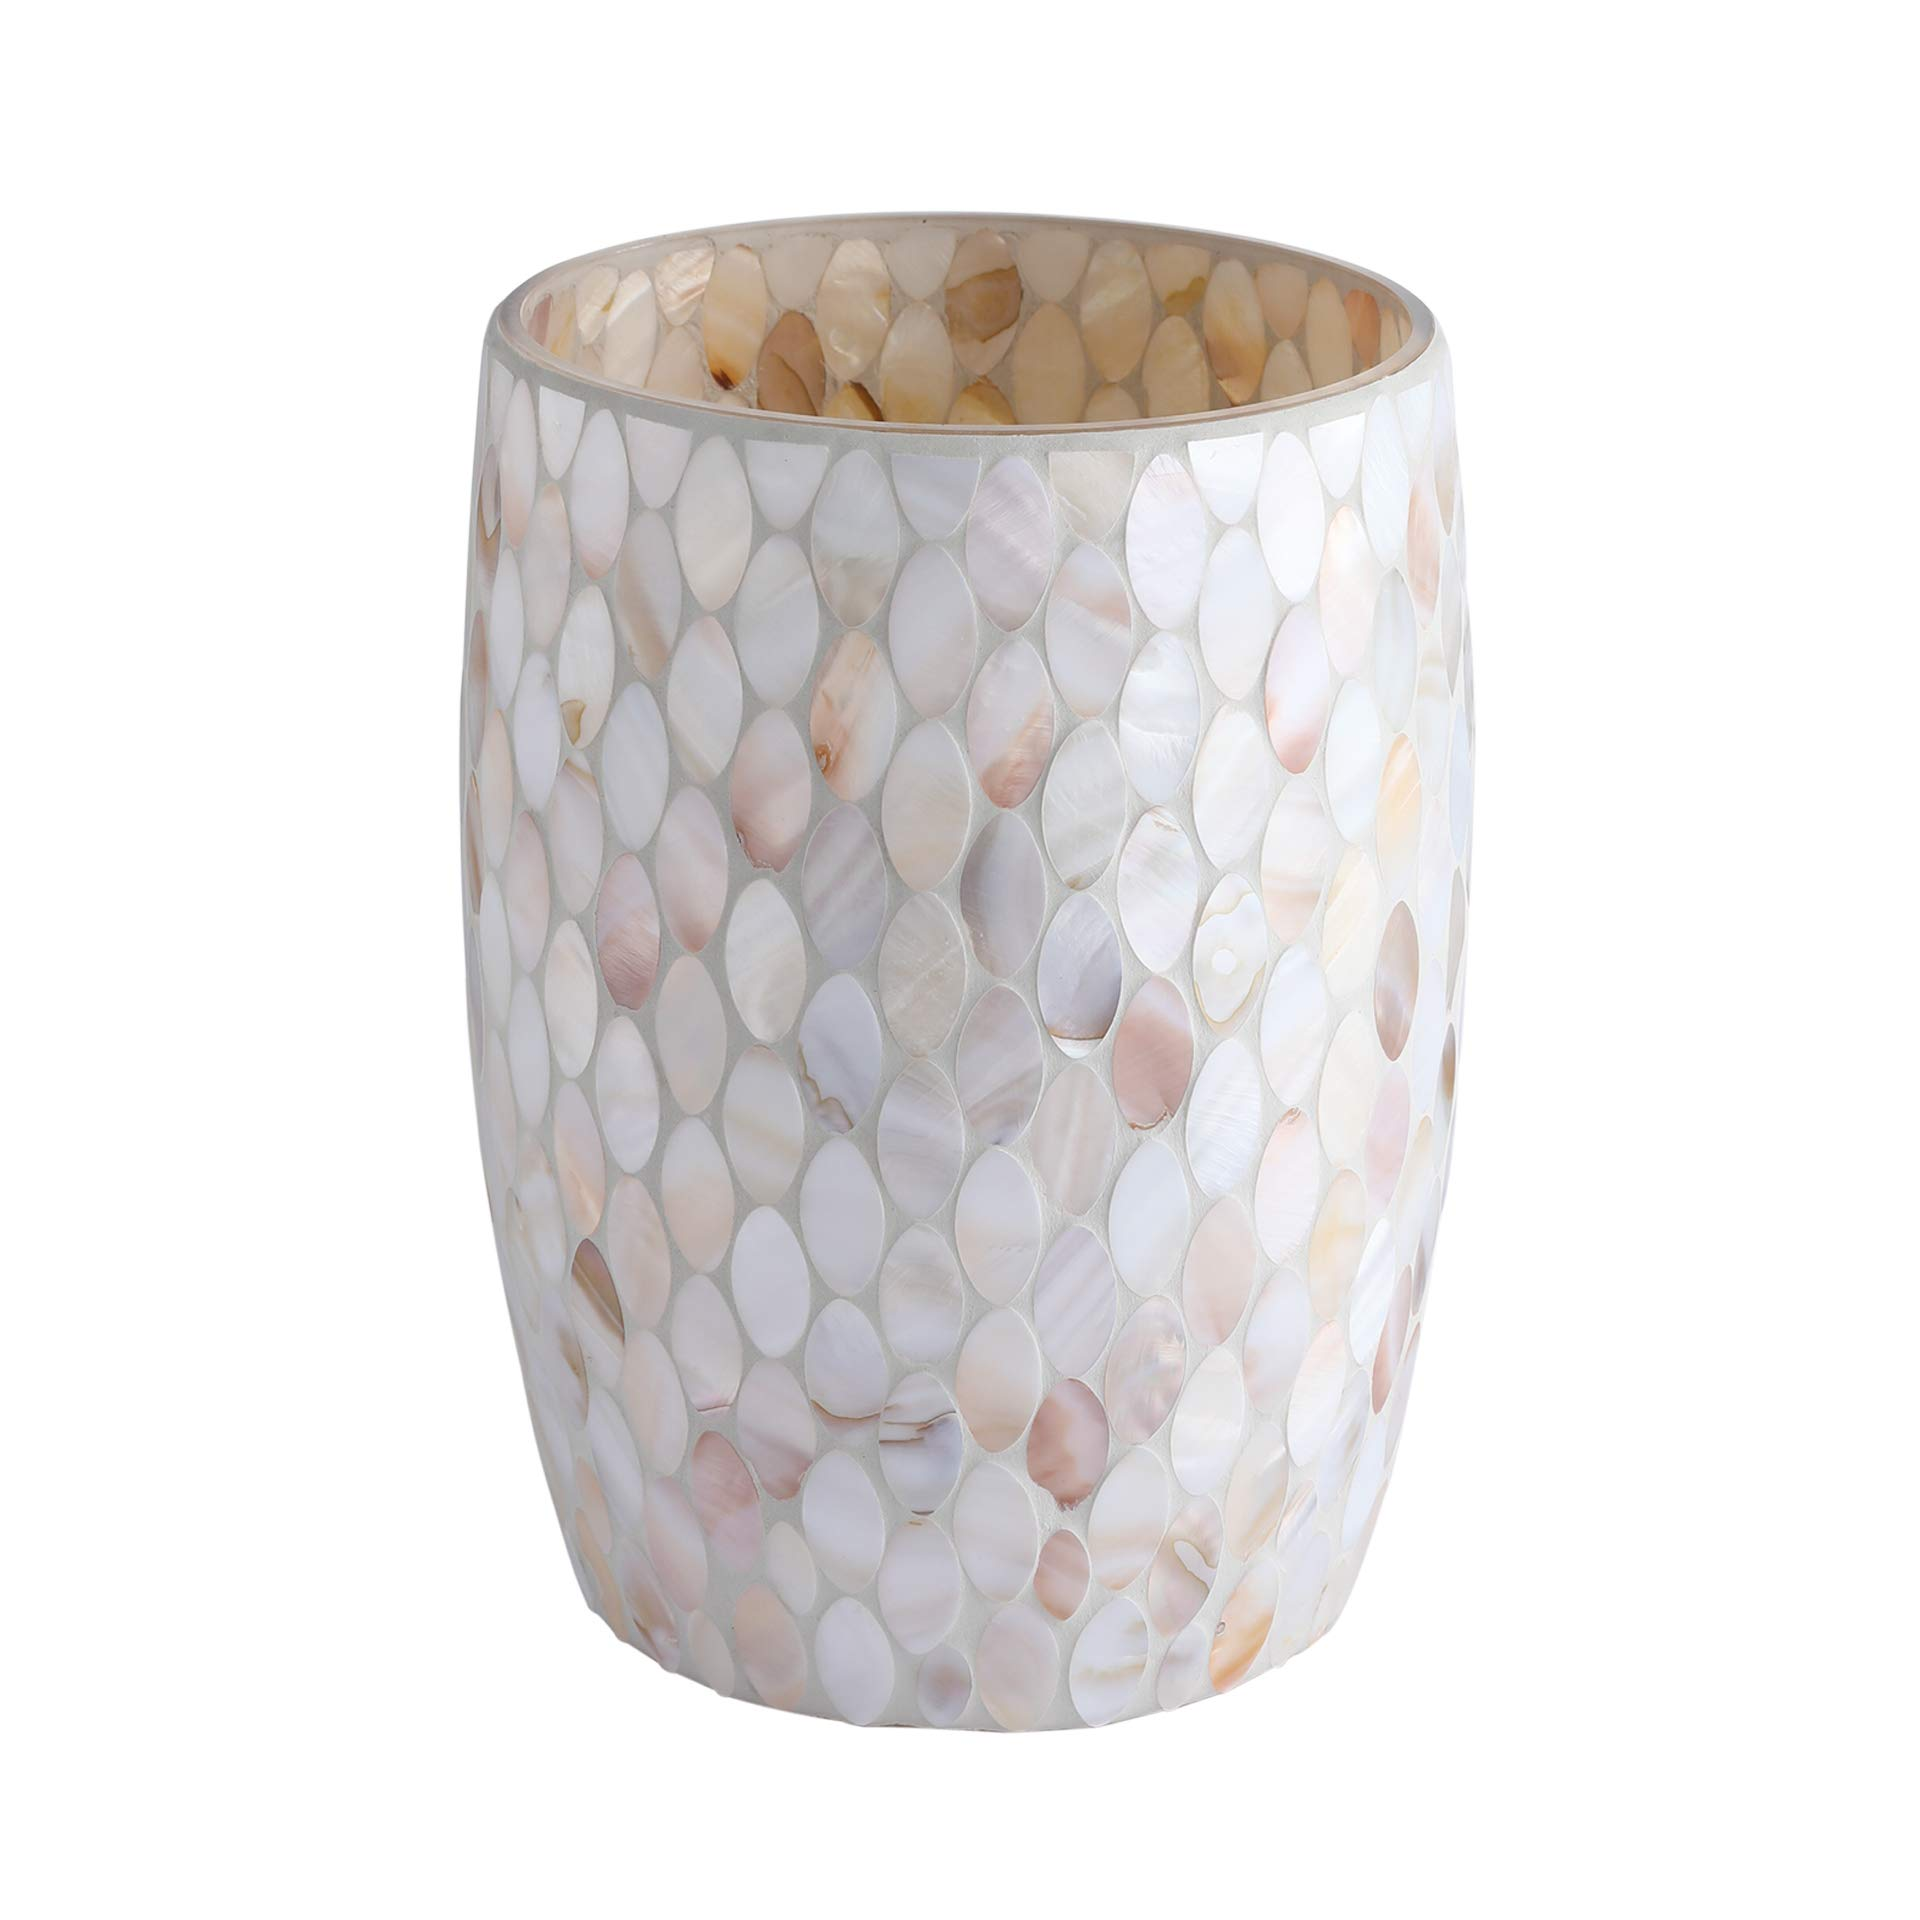 Whole Housewares Bathroom Wastebasket - Glass Mosaic Decorative Trash Can Dia 7.5'' H 10'' (Shell) by Whole Housewares